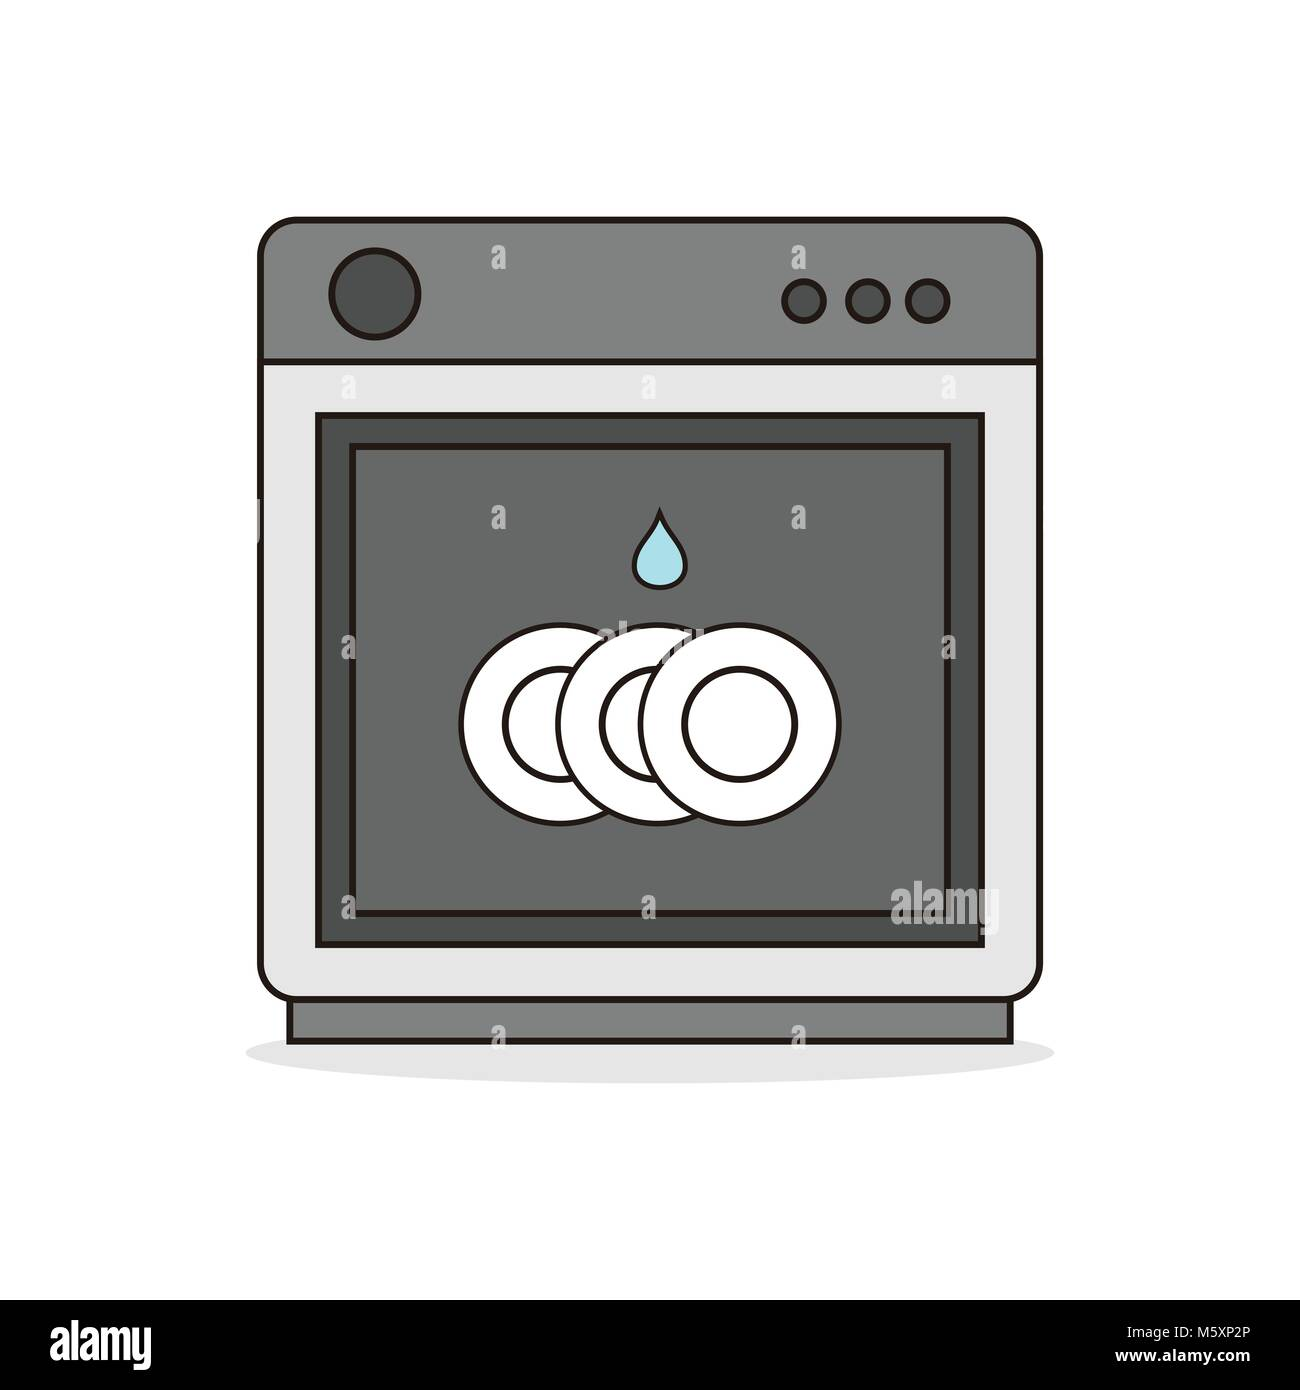 Washing machine logo stock photos washing machine logo stock kitchen washing machine vector illustration graphic design stock image buycottarizona Choice Image